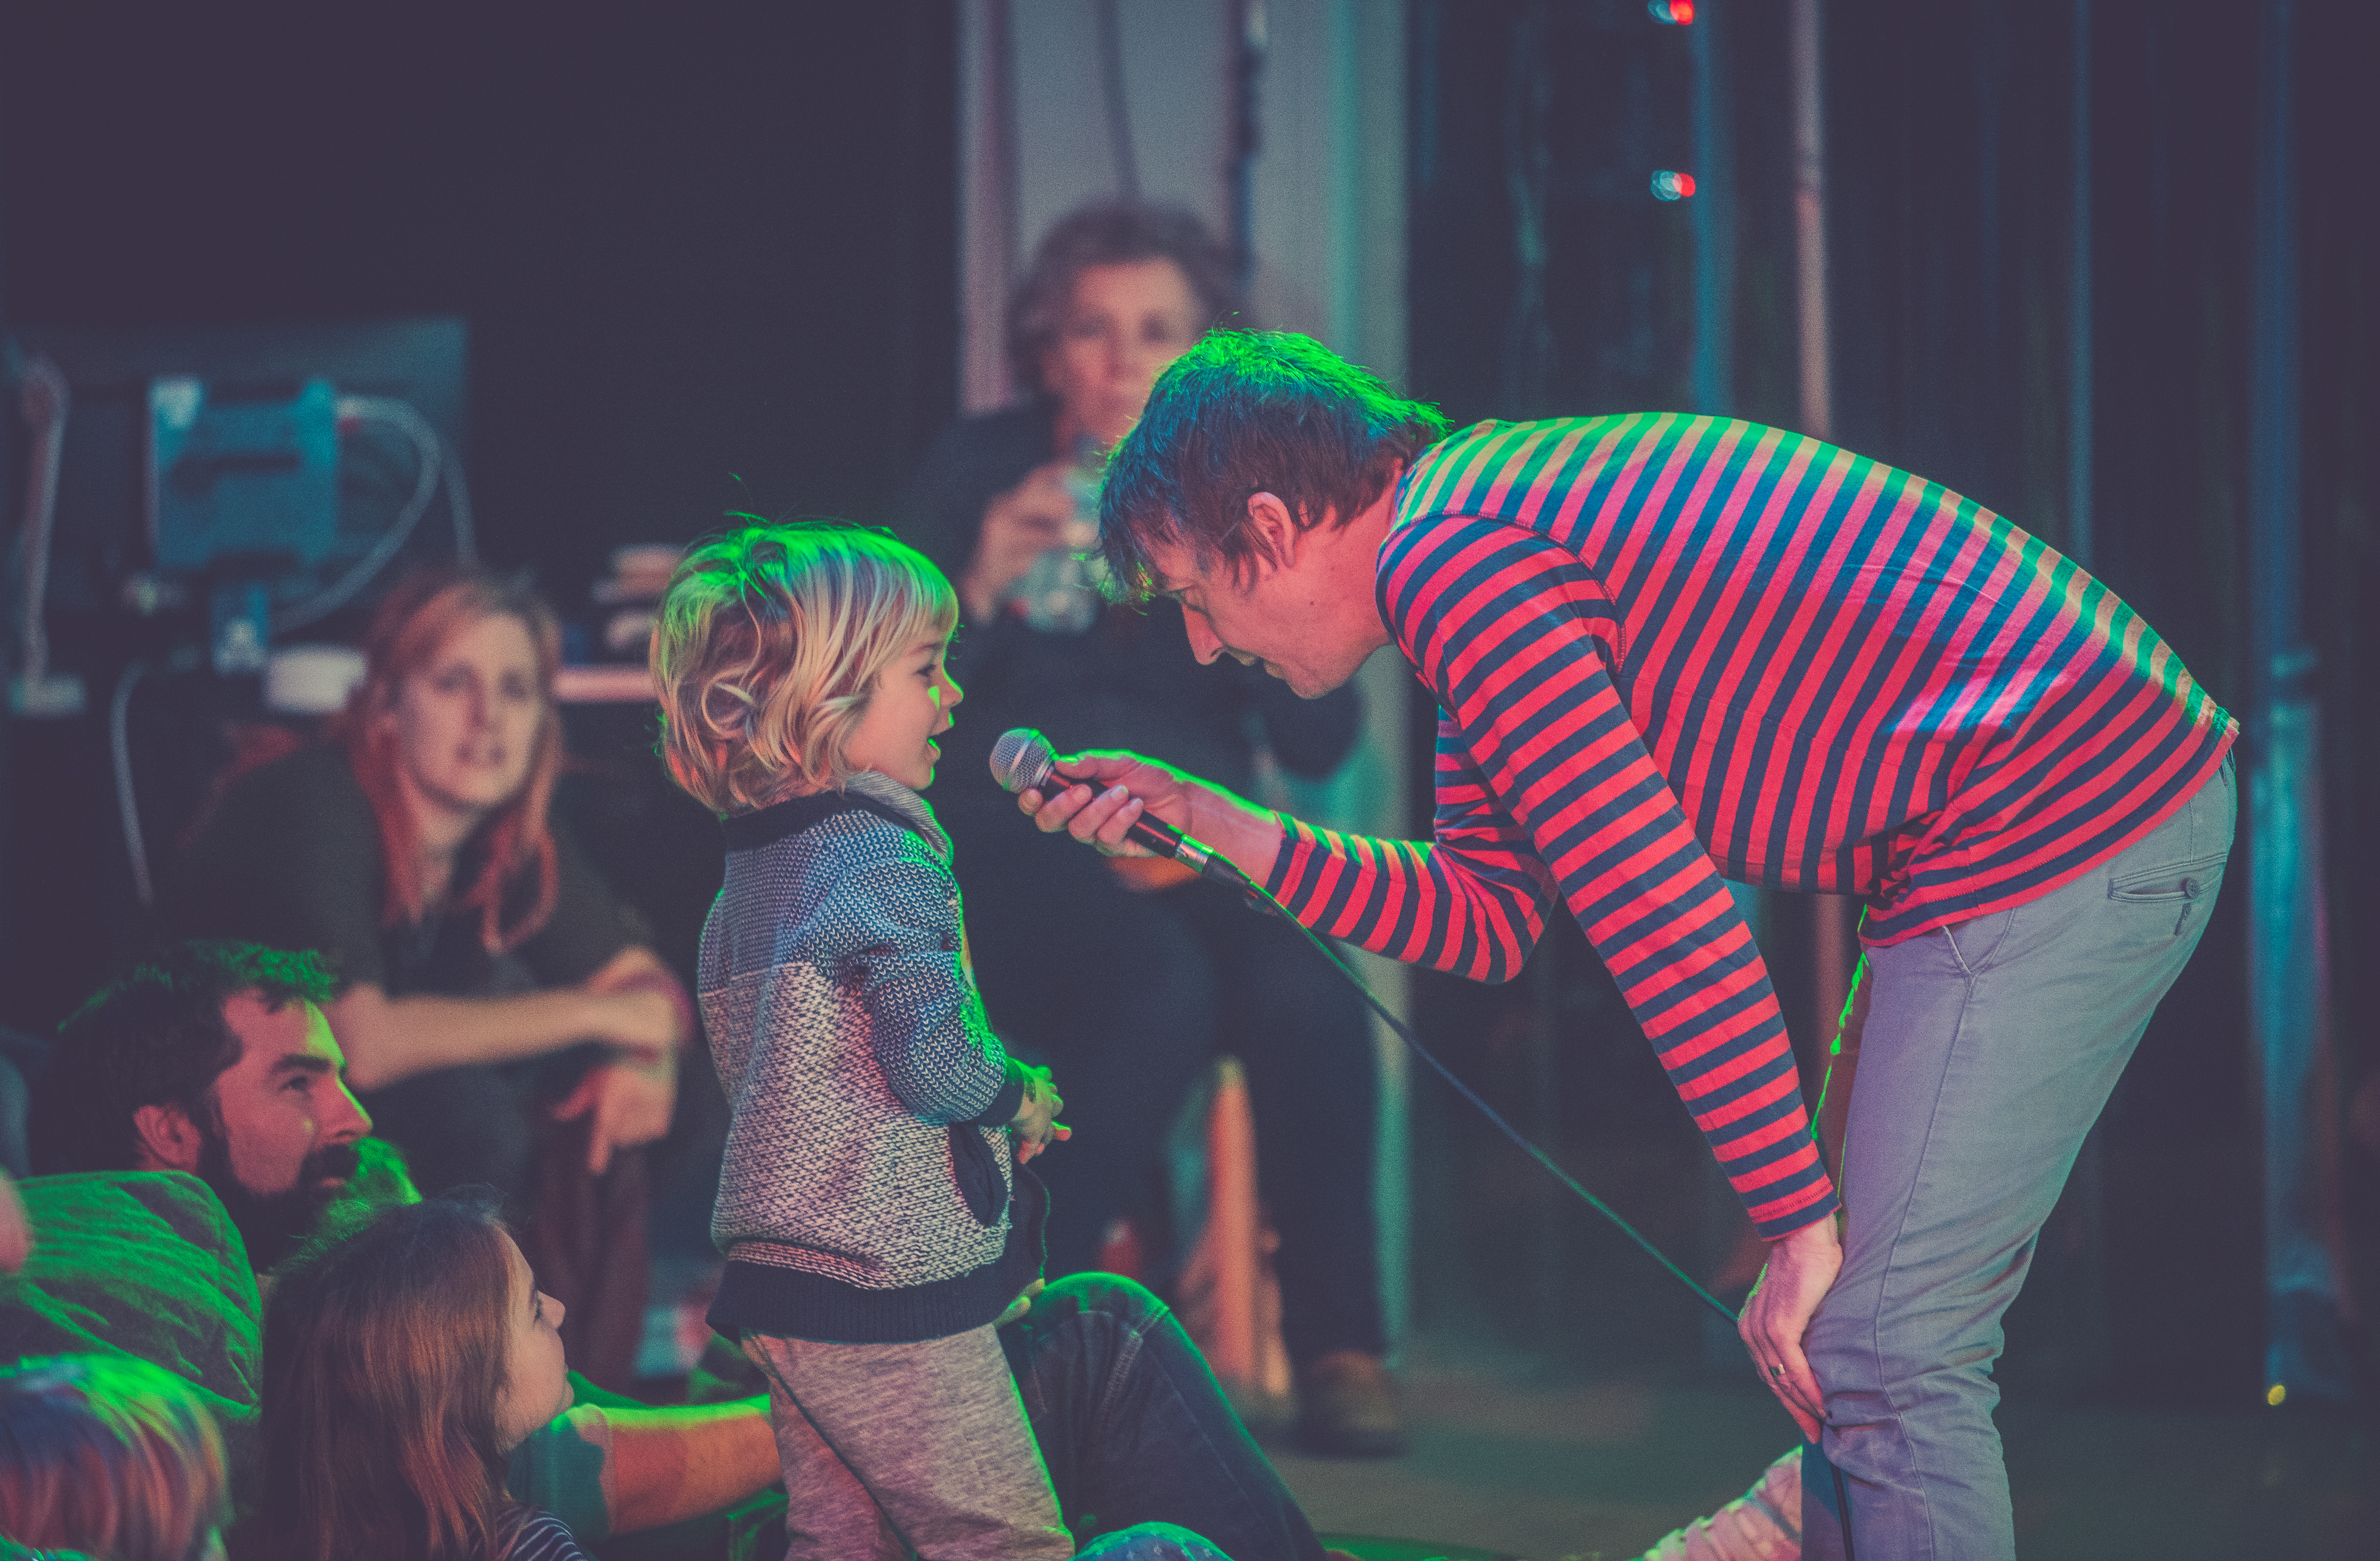 An image of an artist wearing a red and black striped long tshirt holds a microphone to a young child with blonde hair under green and pink flourescent lights.